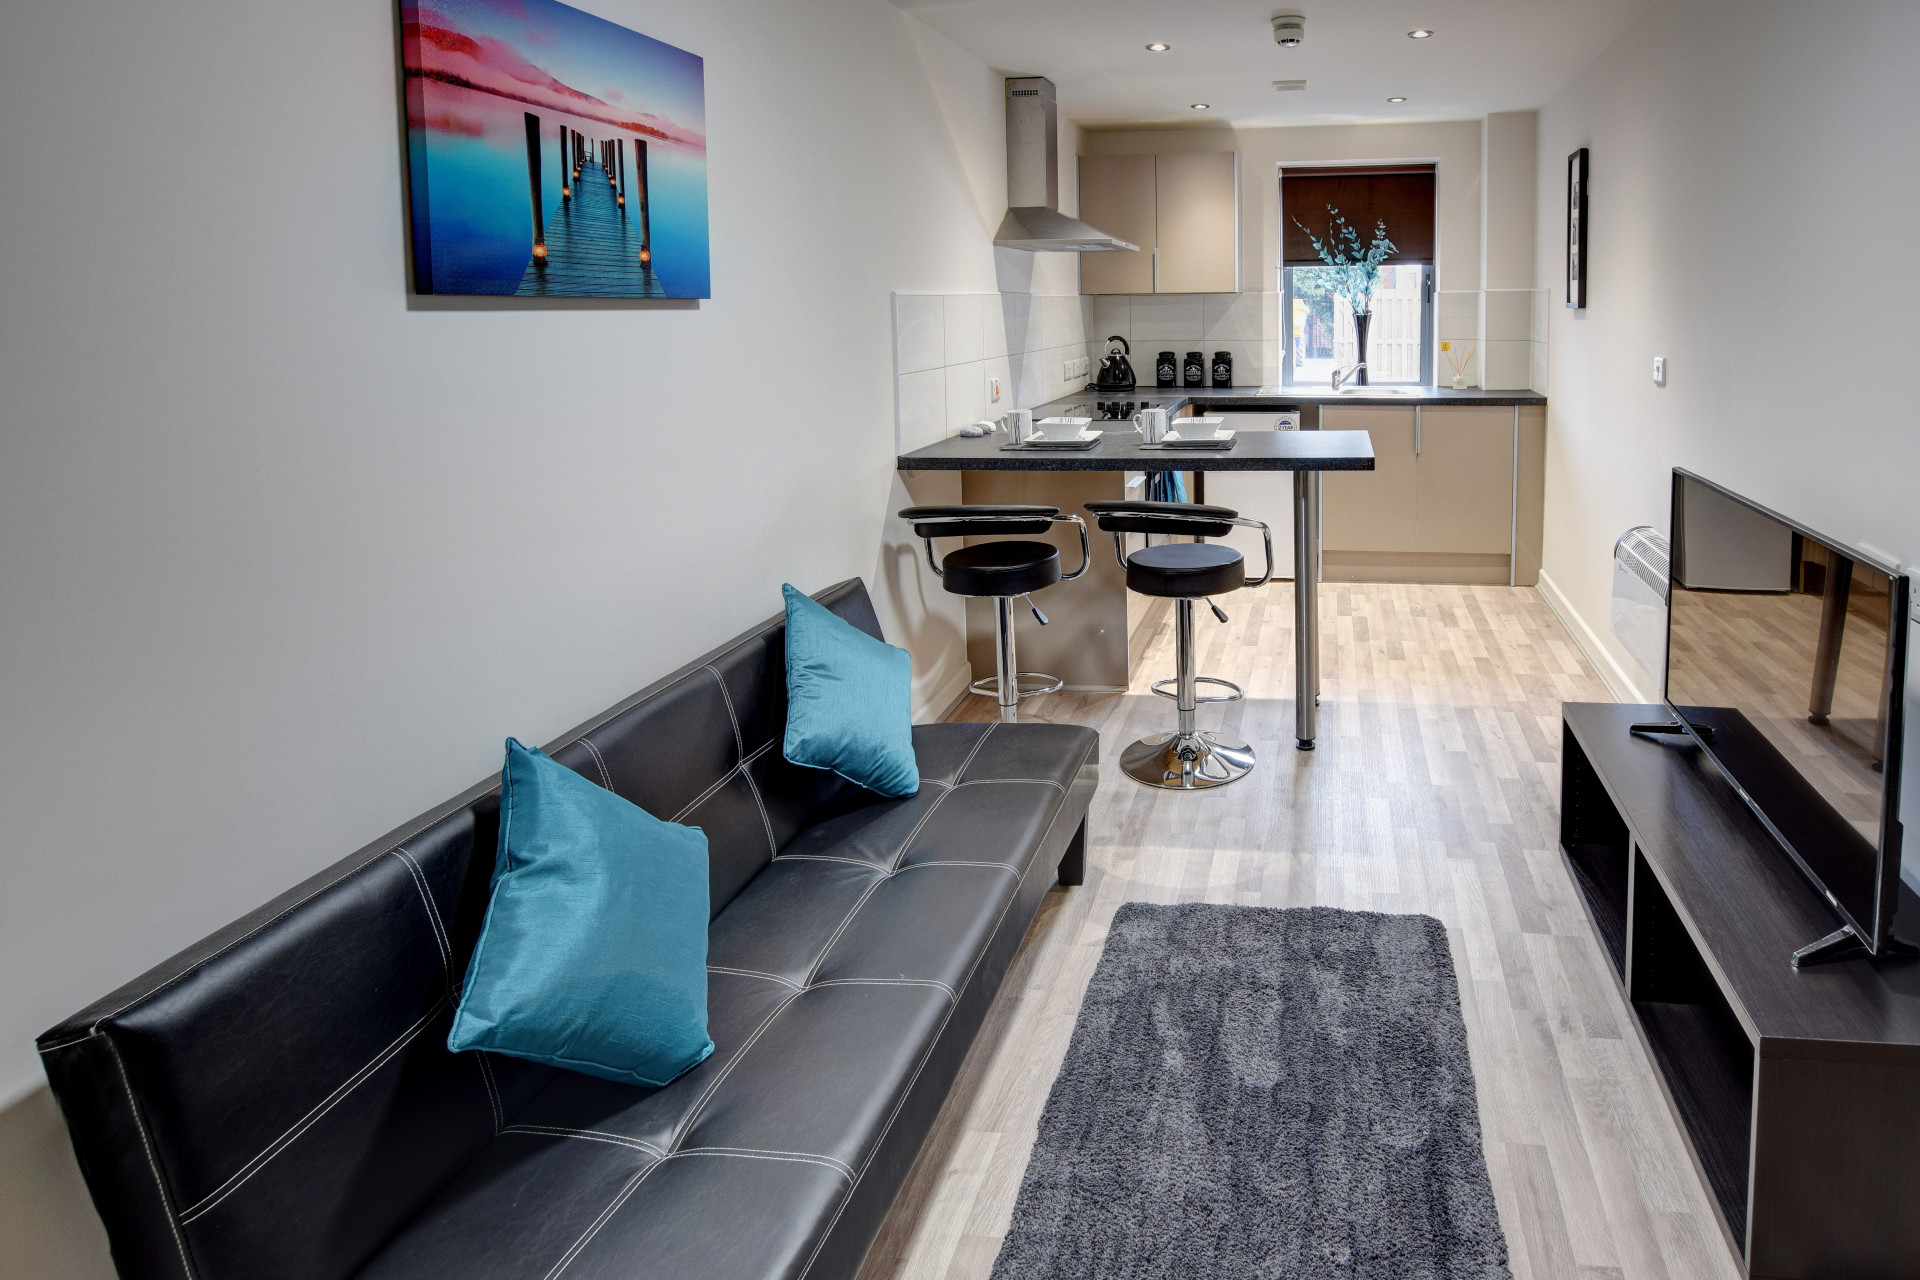 One Bed Flat Leeds 1 Bed Student Flat In Leeds Apartment Holborn Approach Sturents